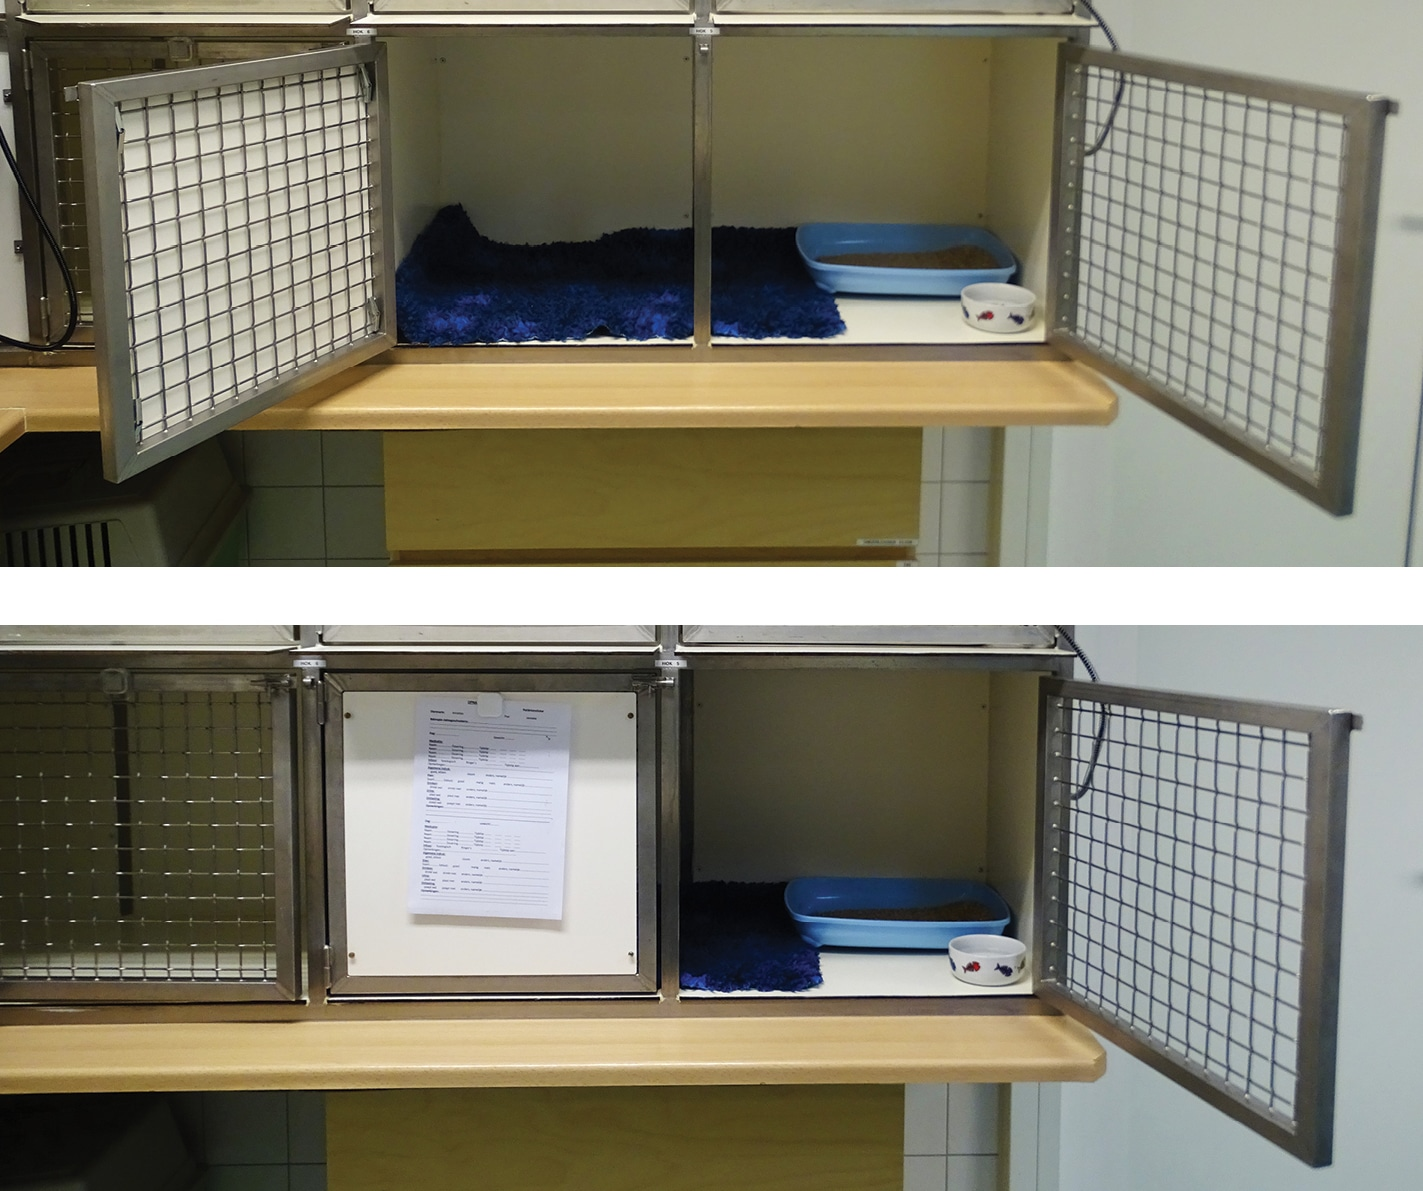 FIGURE 2. Cat cages with double doors. When the doors are closed, cats can hide behind the solid door to feel safe.